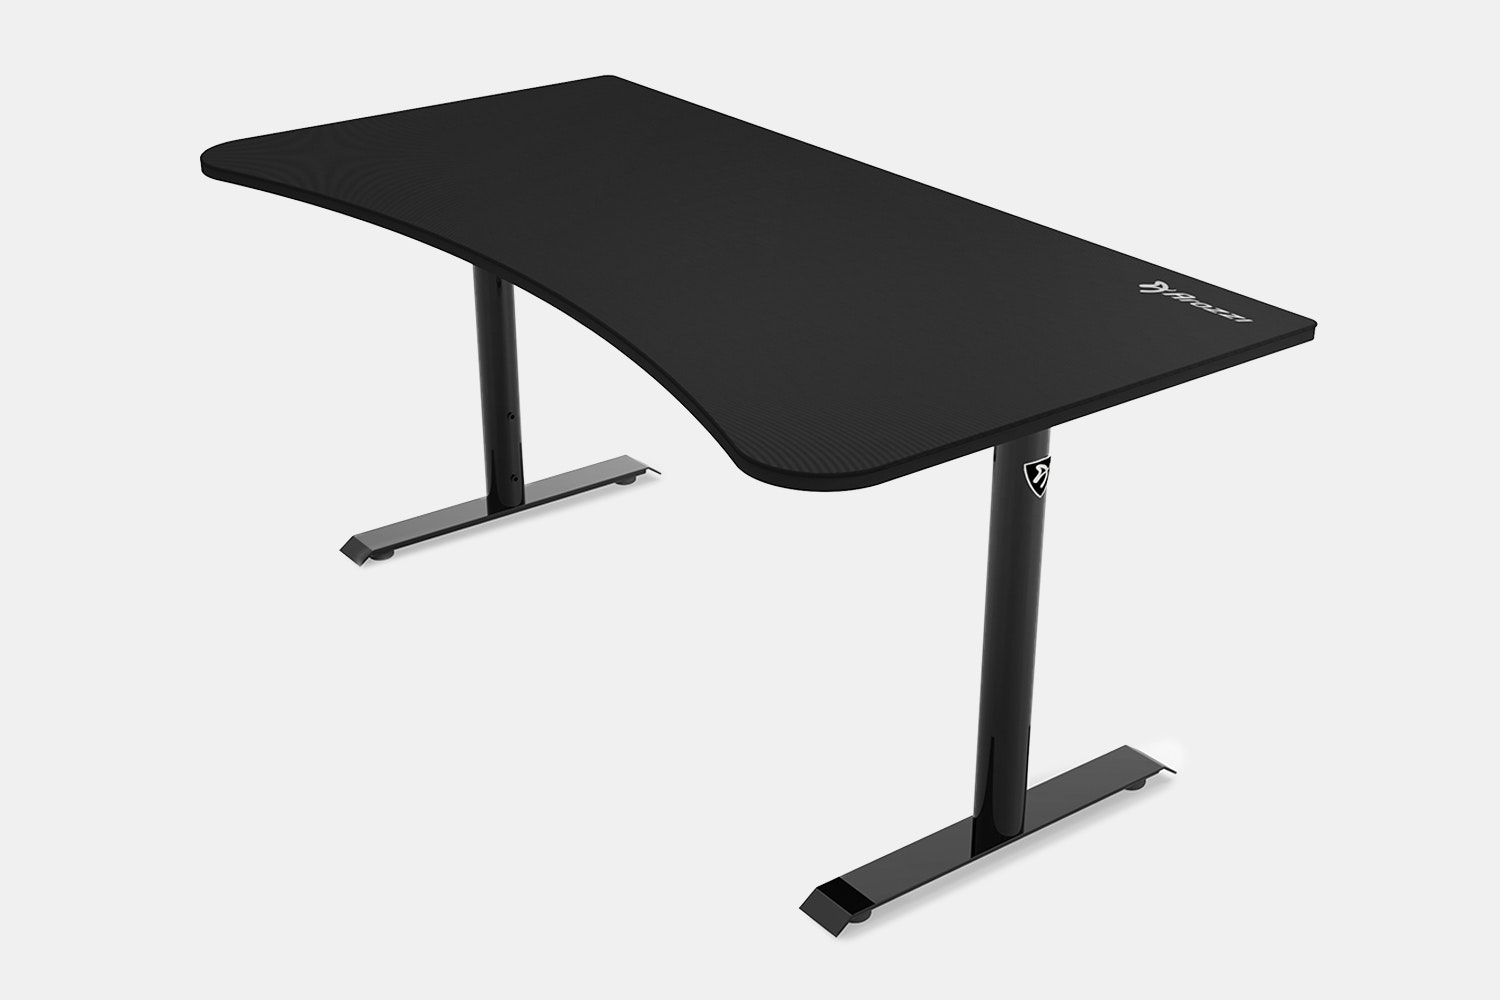 arozzi arena gaming desk price reviews massdrop rh massdrop com black gaming computer desk black gaming desk ikea